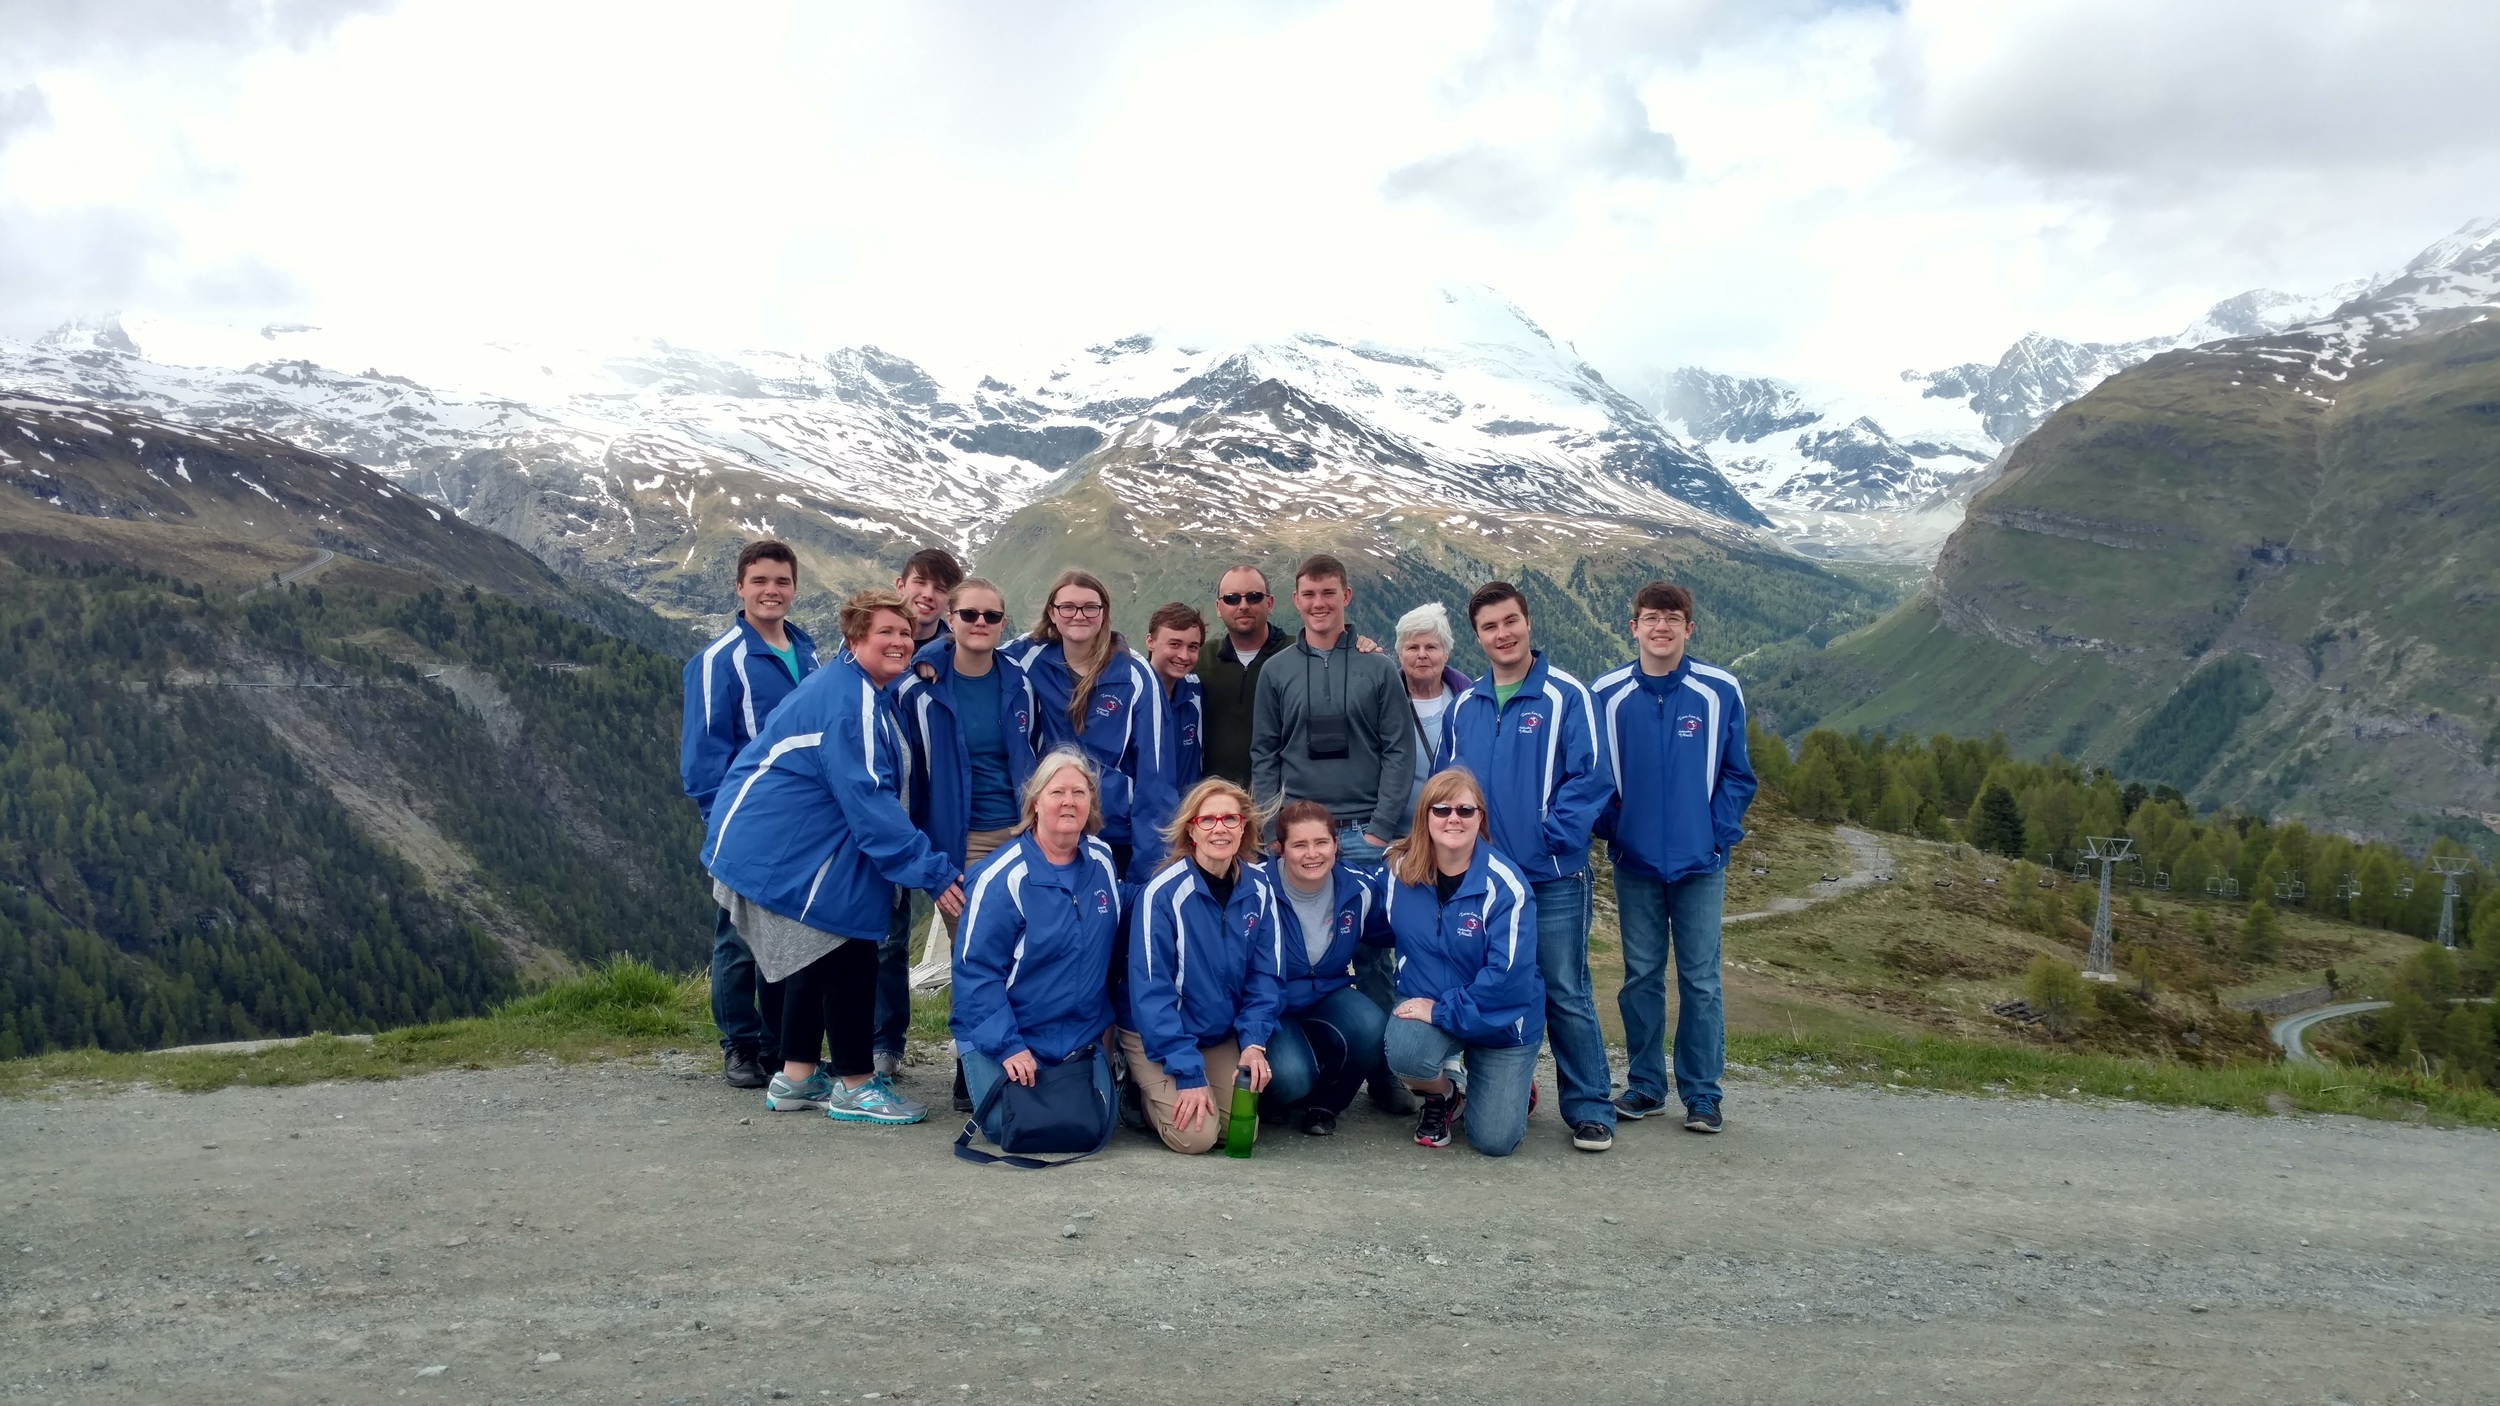 A few parents and grandparents joined the North Lamar and Paris band students as they represented Texas in Europe. Above, the Lamar County group gathered at the base of the Matterhorn Mountain in Switzerland.